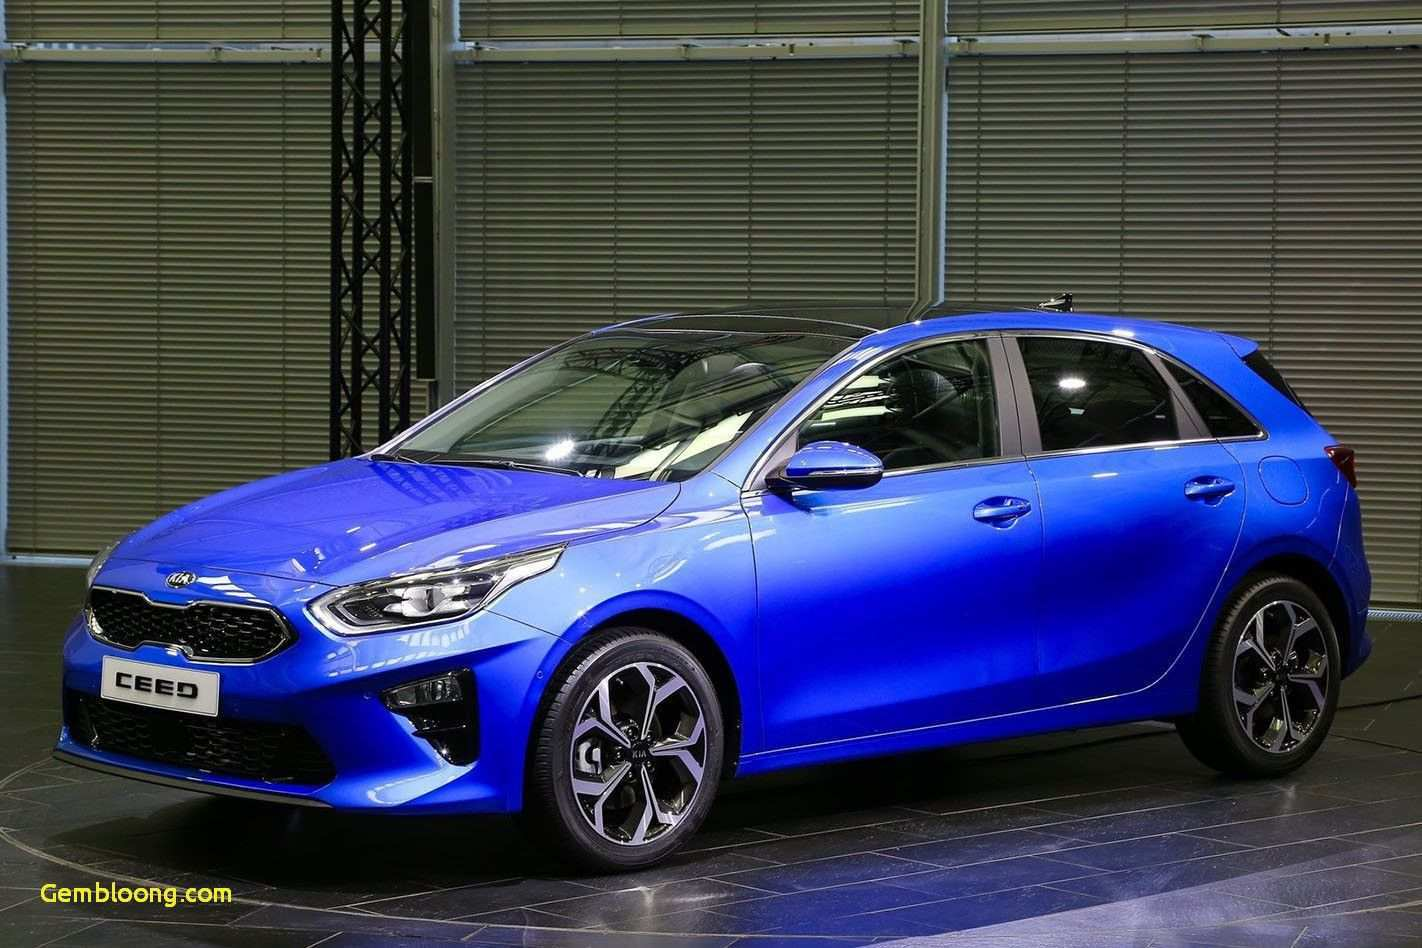 57 Best Review Kia Forte Hatchback 2020 Pictures with Kia Forte Hatchback 2020